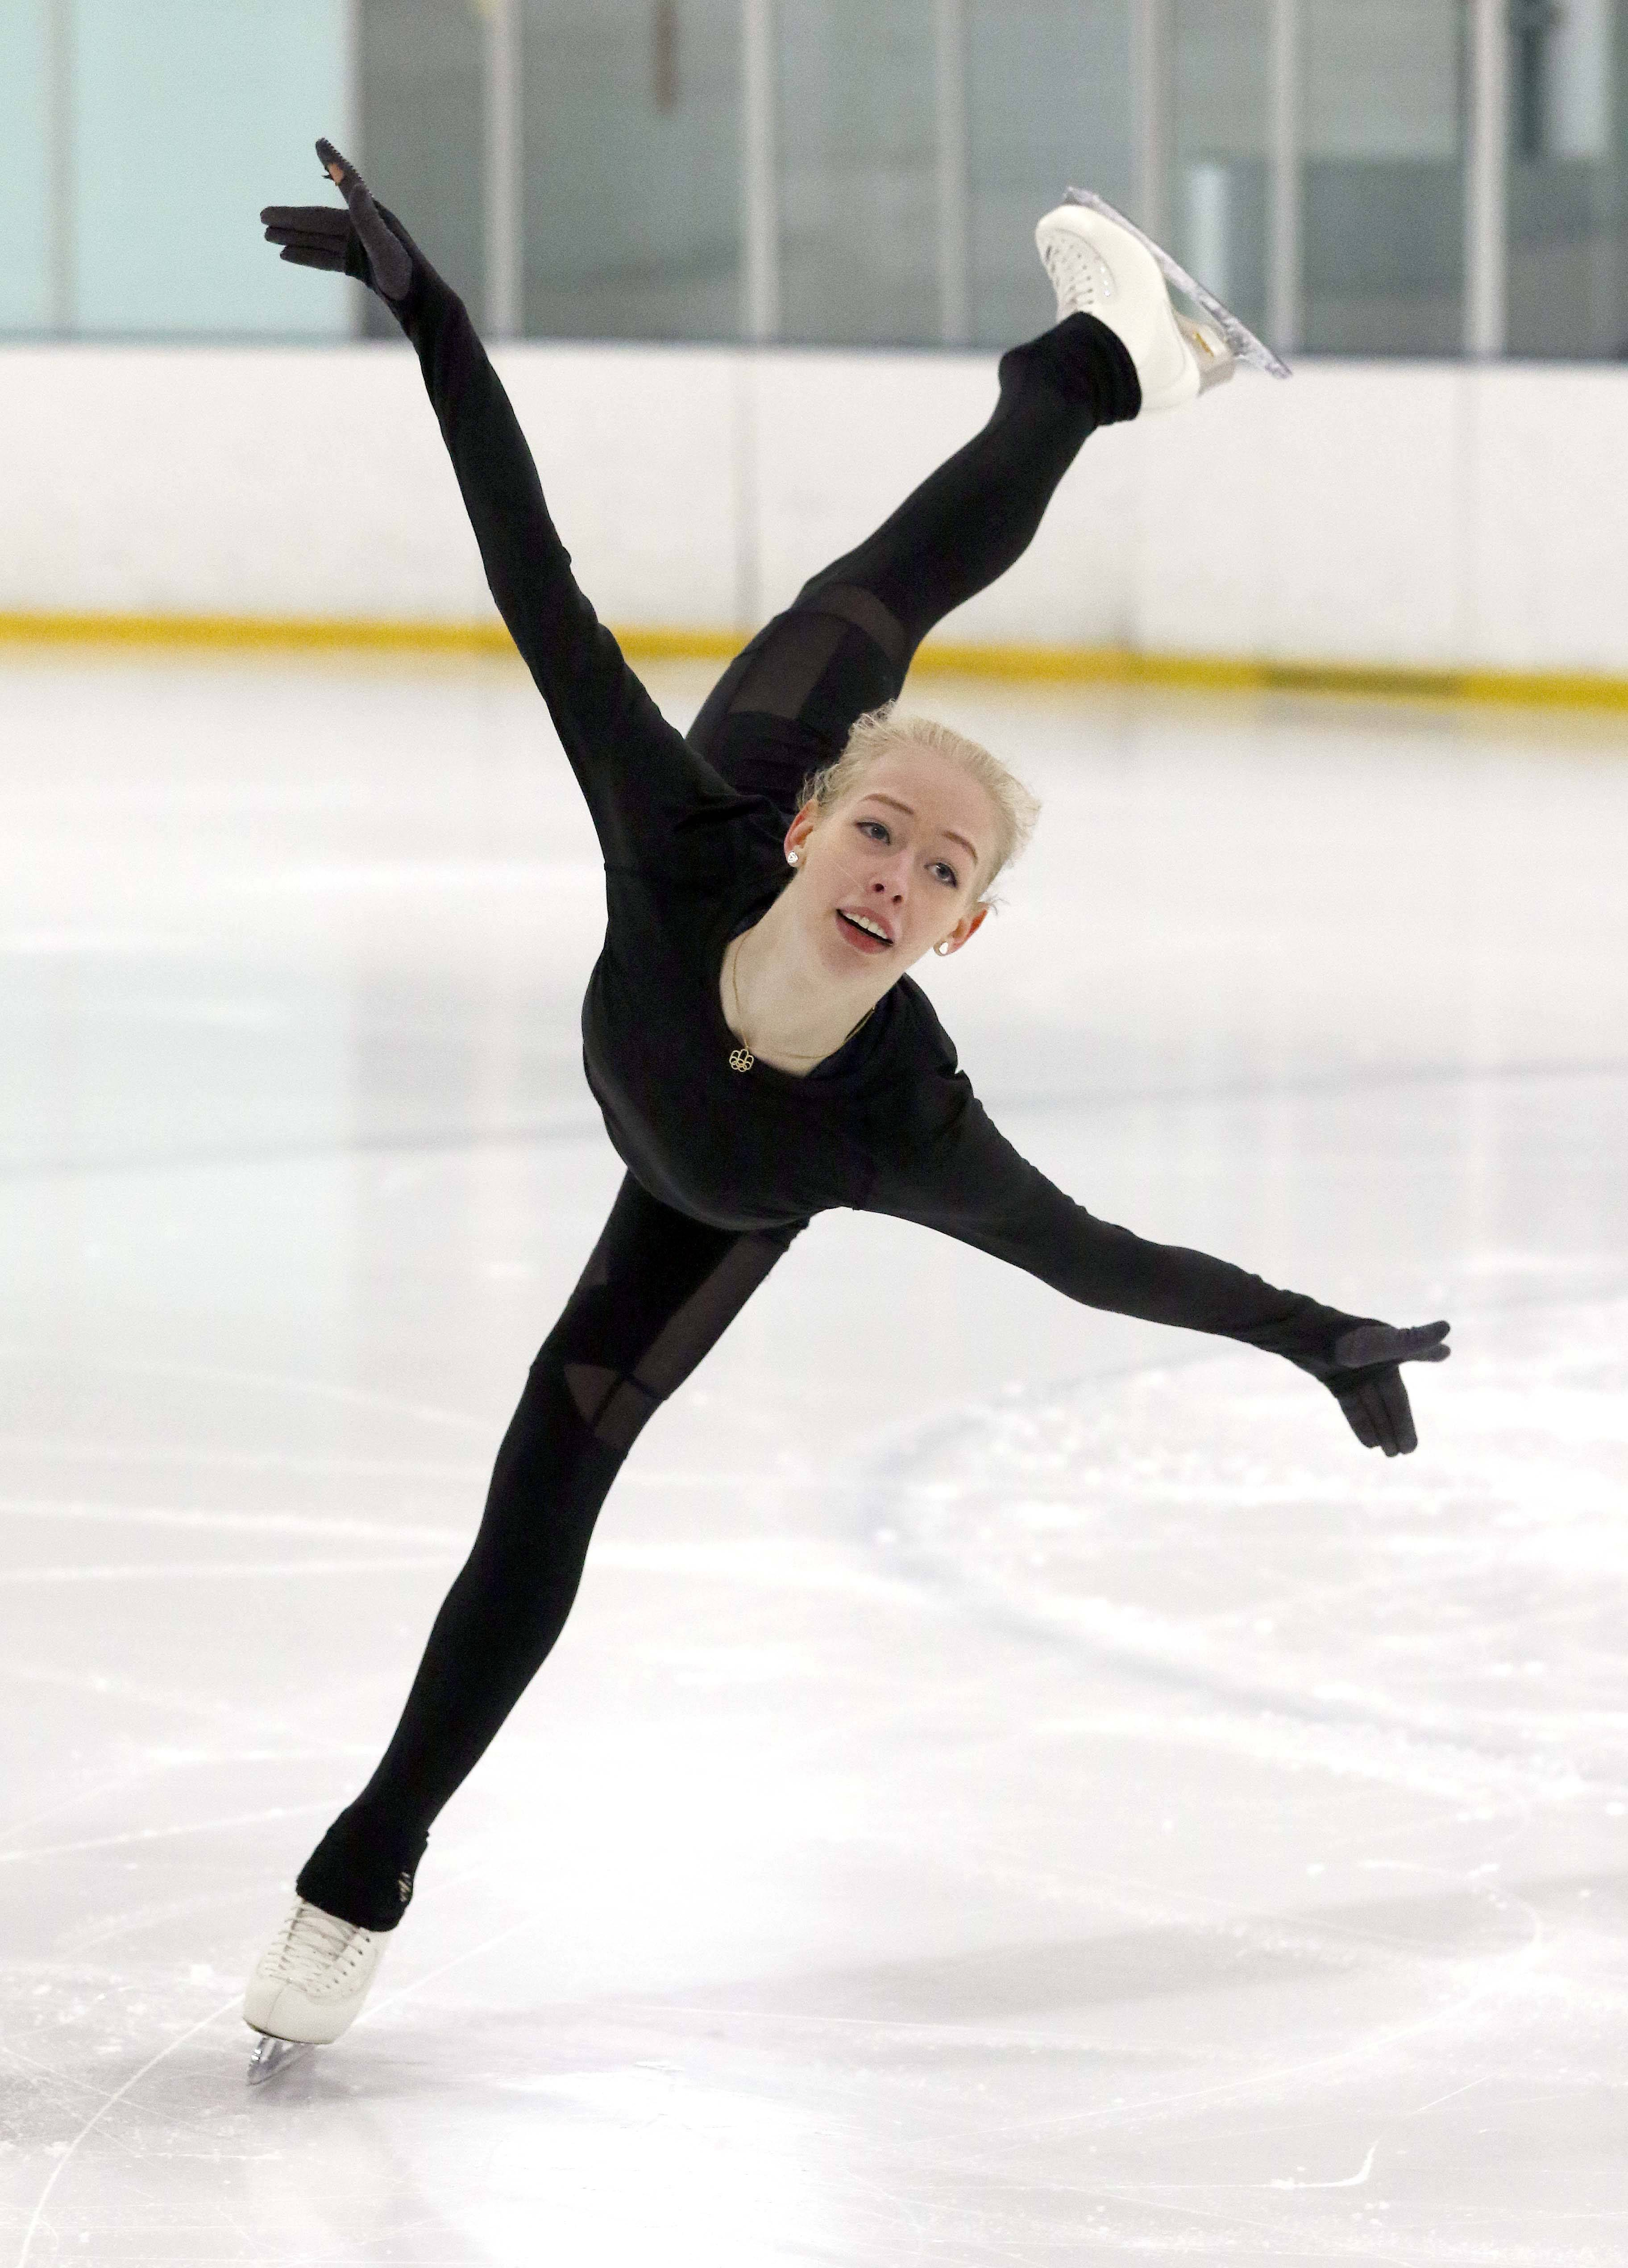 Skater Bradie Tennell practiced Tuesday at Twin Rinks Ice Pavilion in Buffalo Grove.